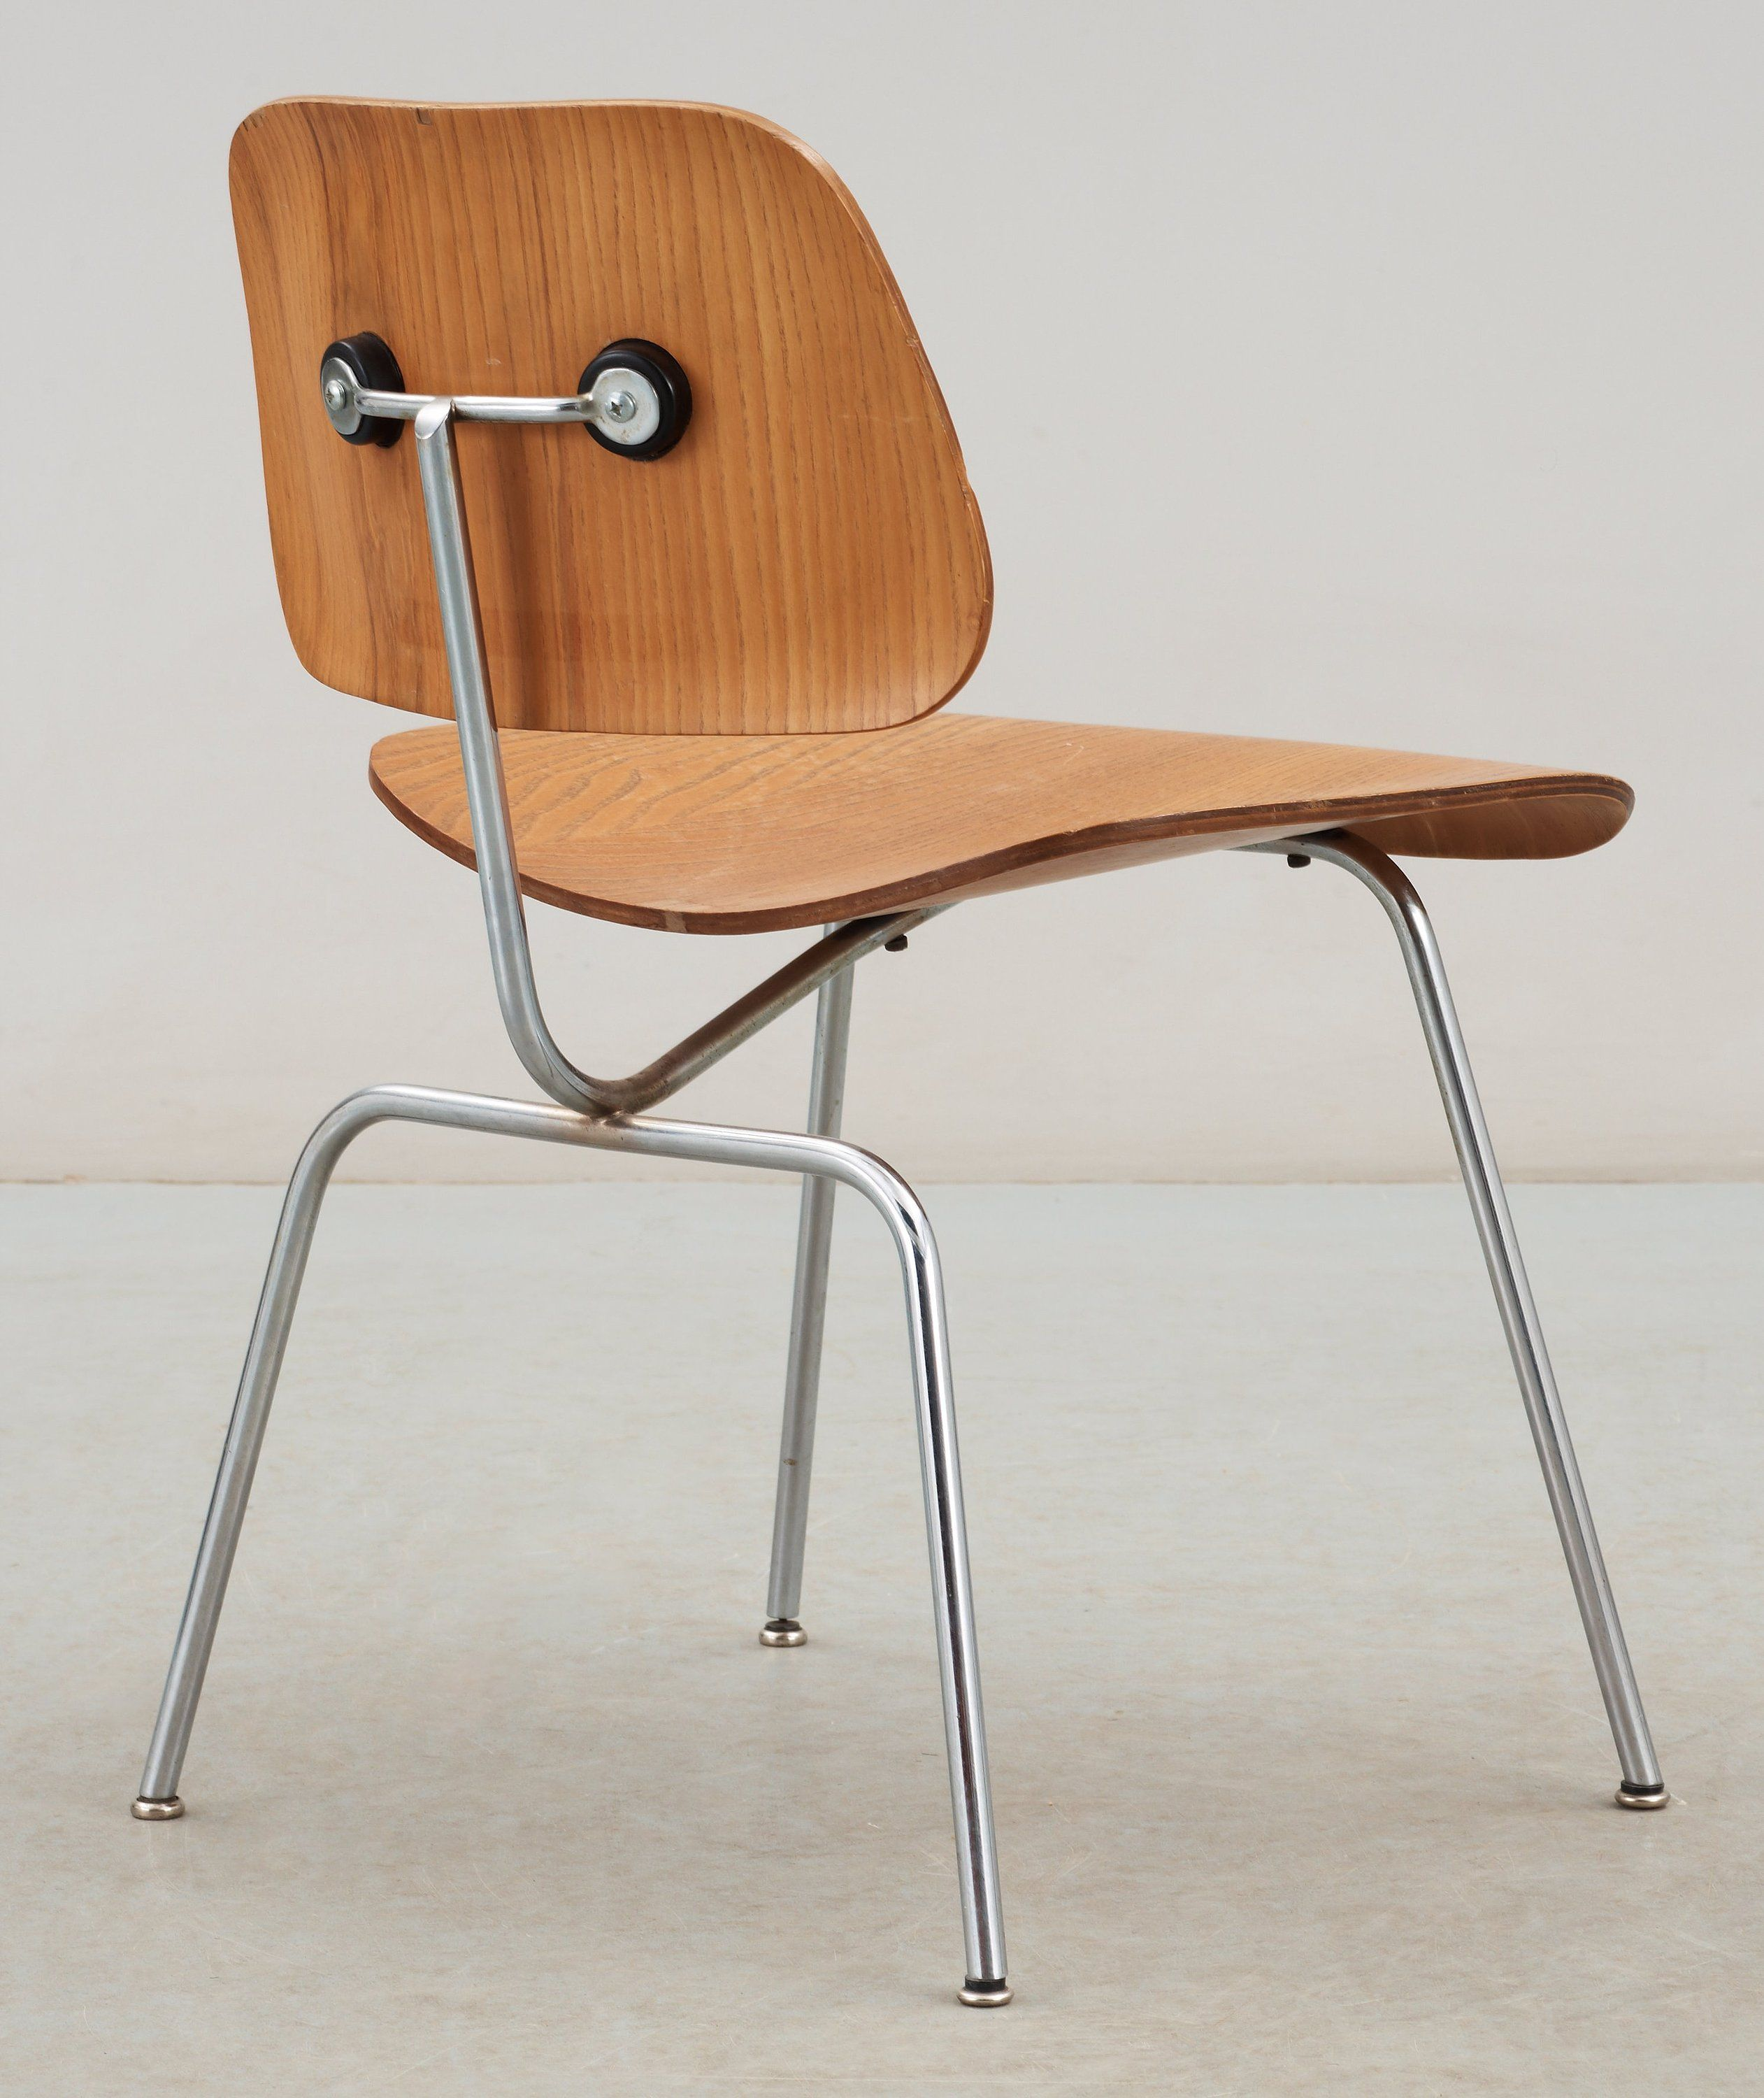 Charles & Ray Eames 'DCM' | our house | Pinterest ...